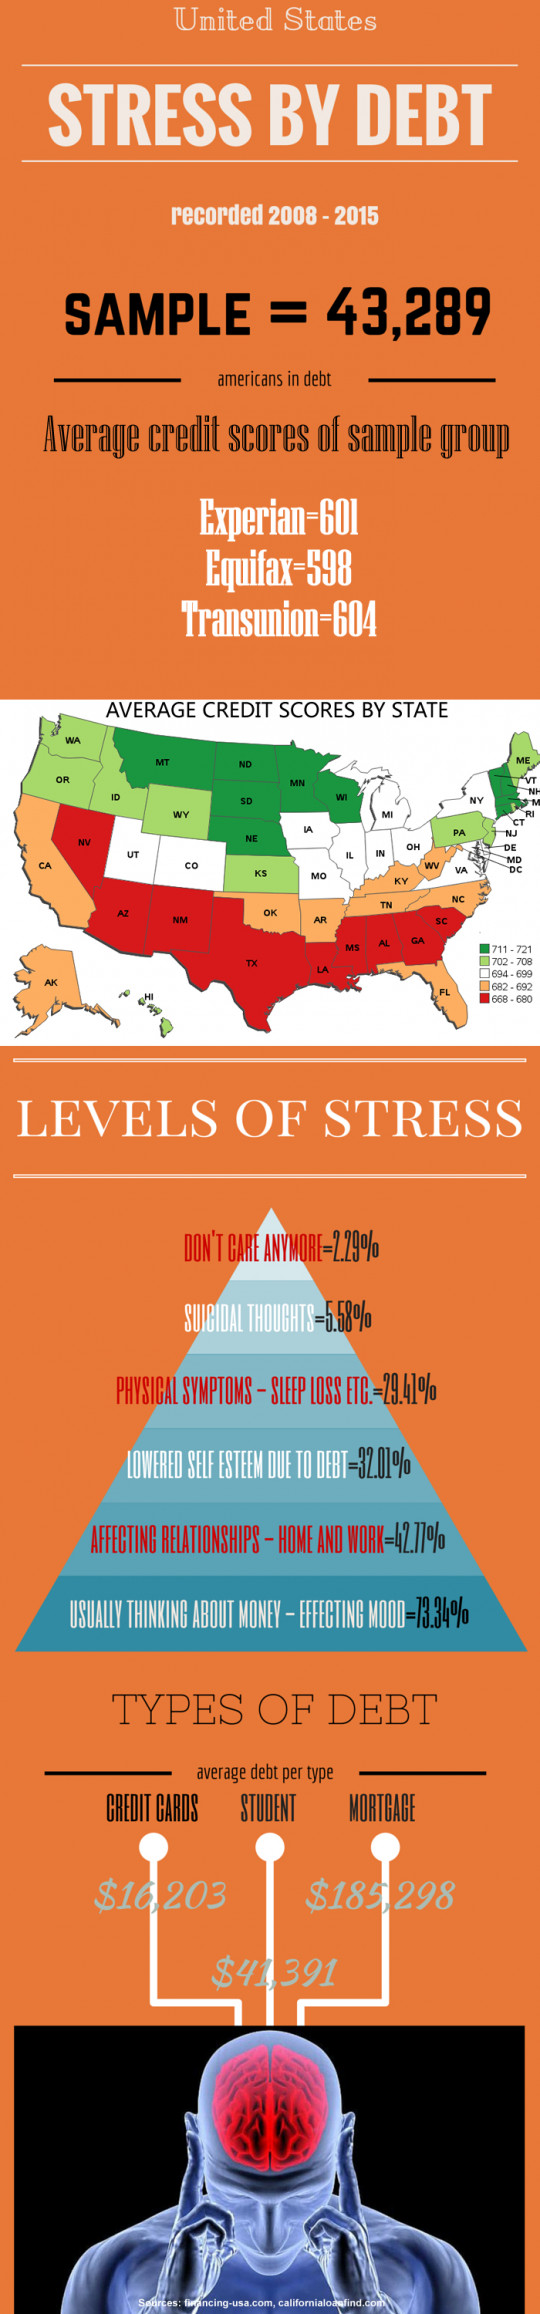 Stress by Debt